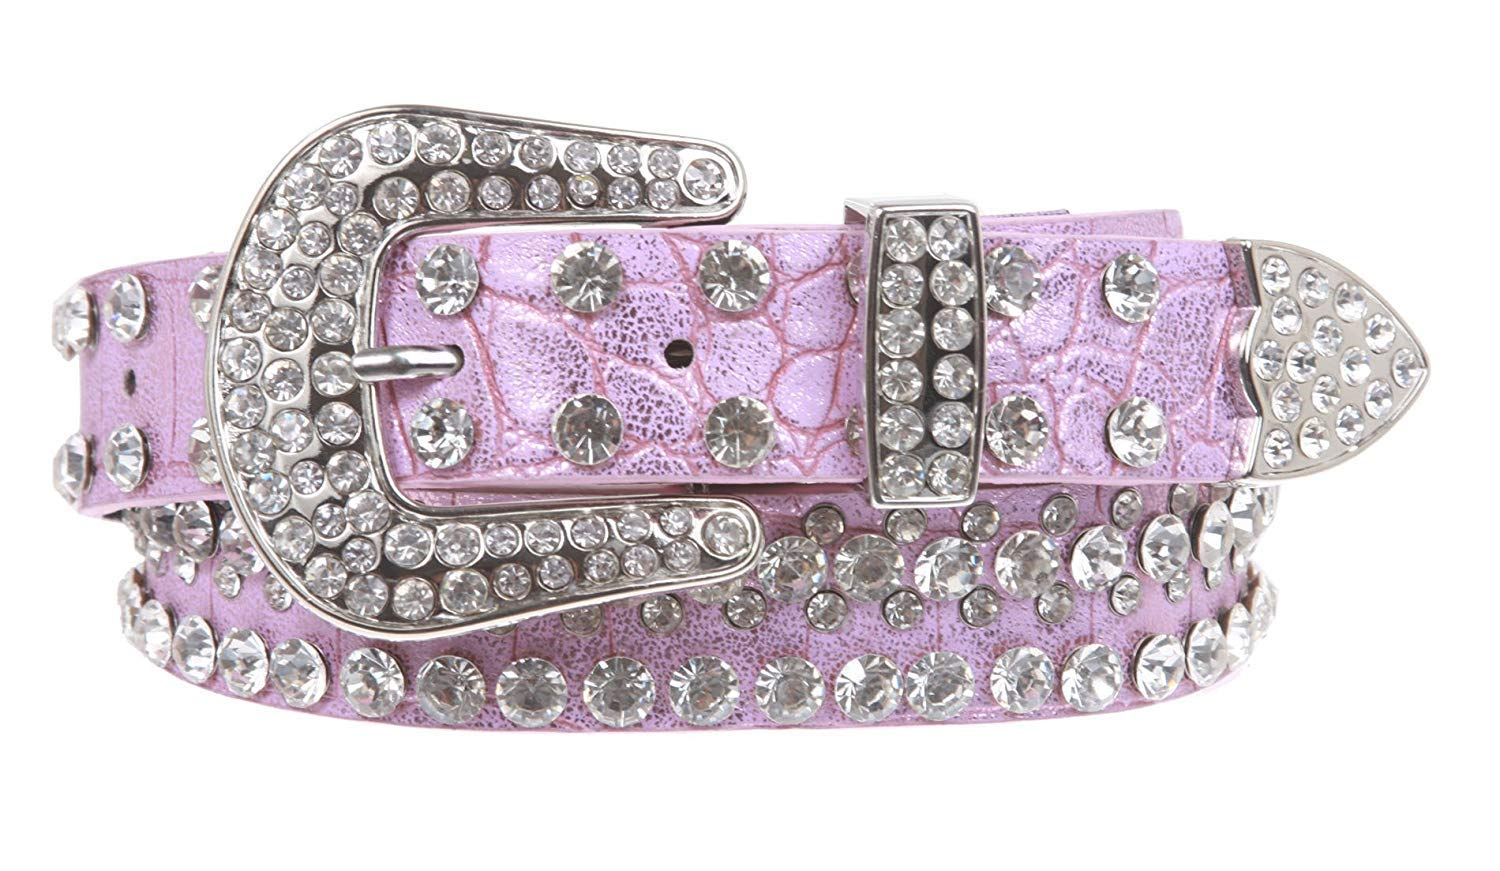 MONIQUE Kids Stylish Western Cowgirl Rhinestone Studded Skinny 27 mm Wide Belt,Pink 28 Inch